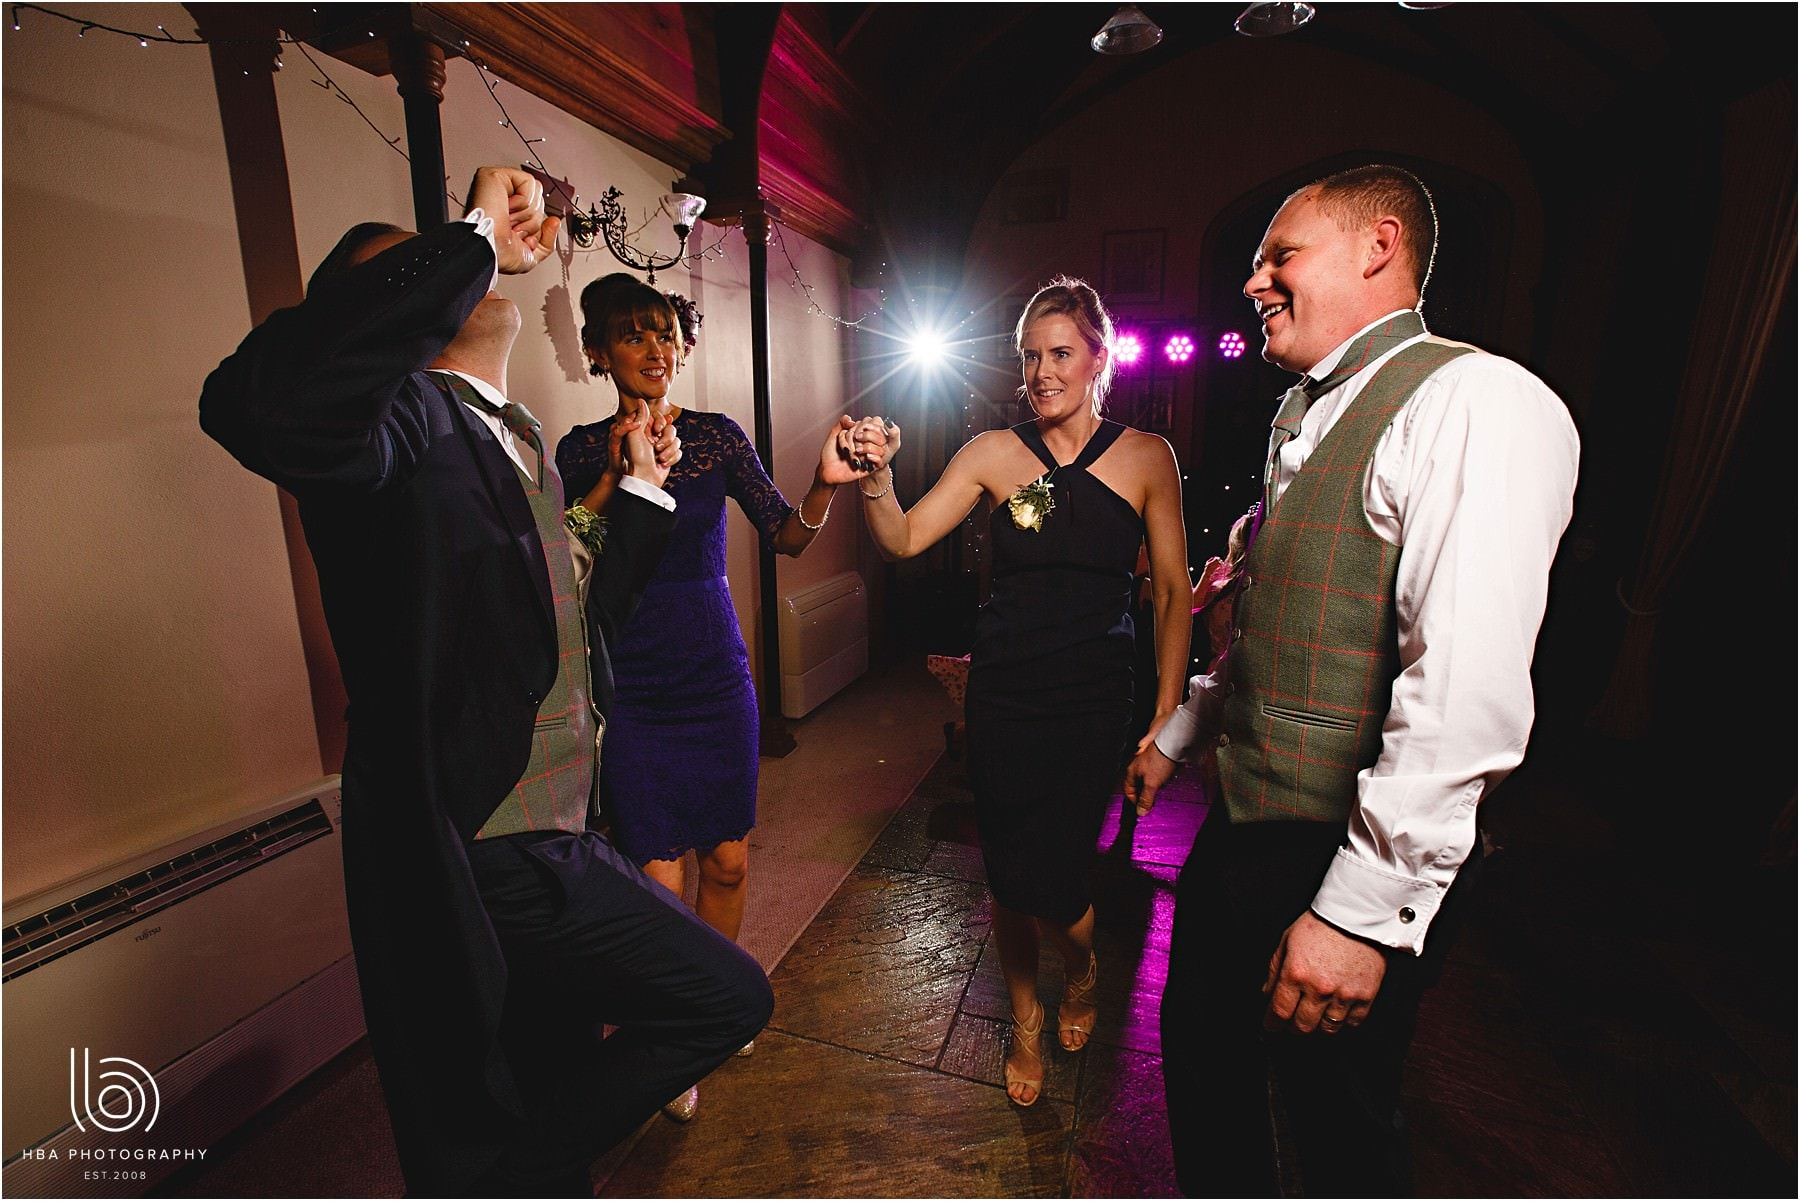 Wedding guests dancing together